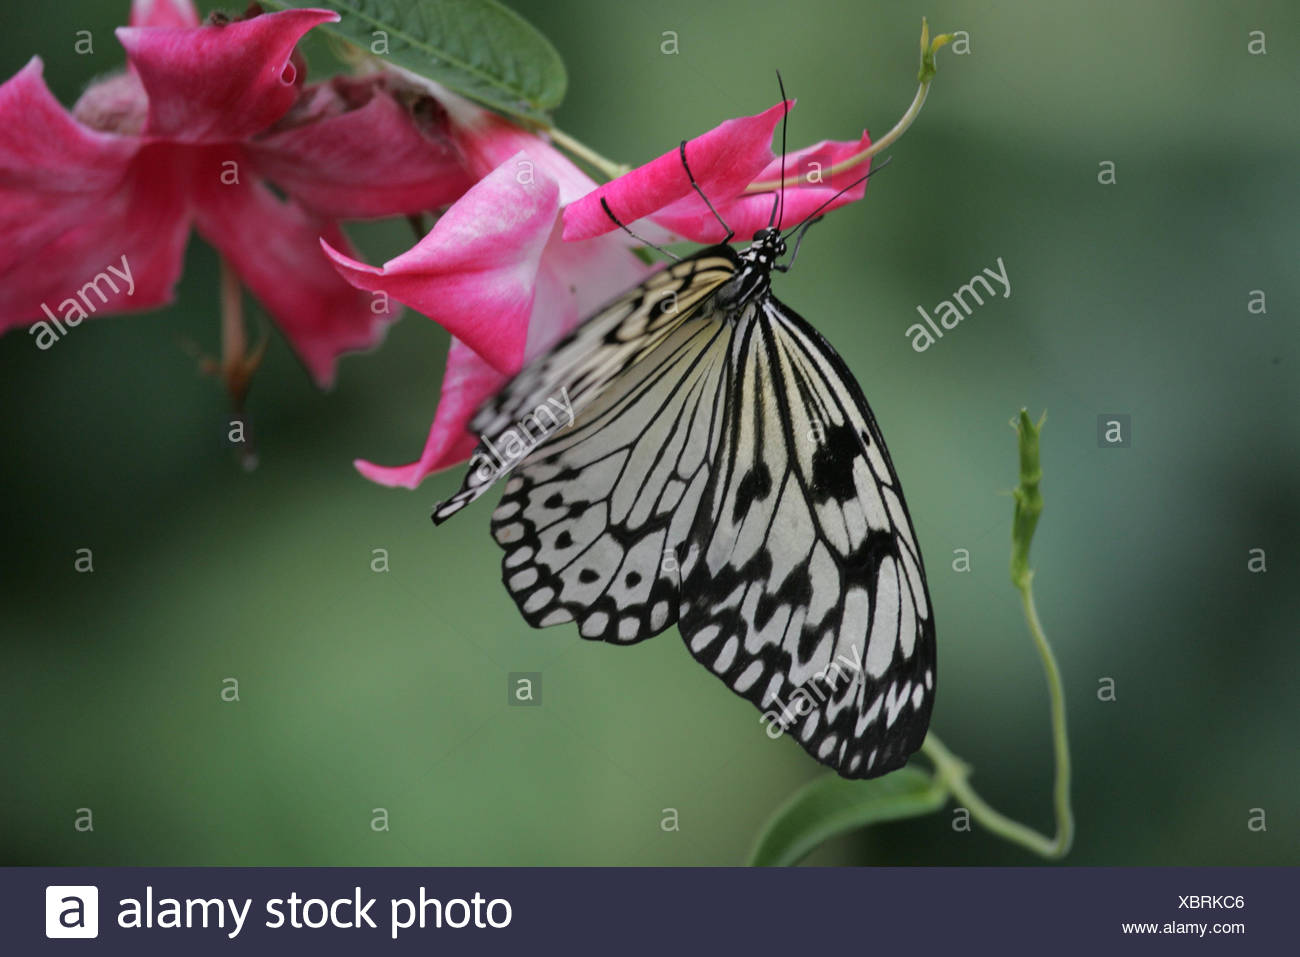 Blossoms, butterfly, white tree nymph, Idea leuconoe, Germany, Mecklenburg-West Pomerania, island Usedom, butterfly's farm route moor, animal, insect, hymenoptera, seldom, filigree, black-and-white, patterned, - Stock Image